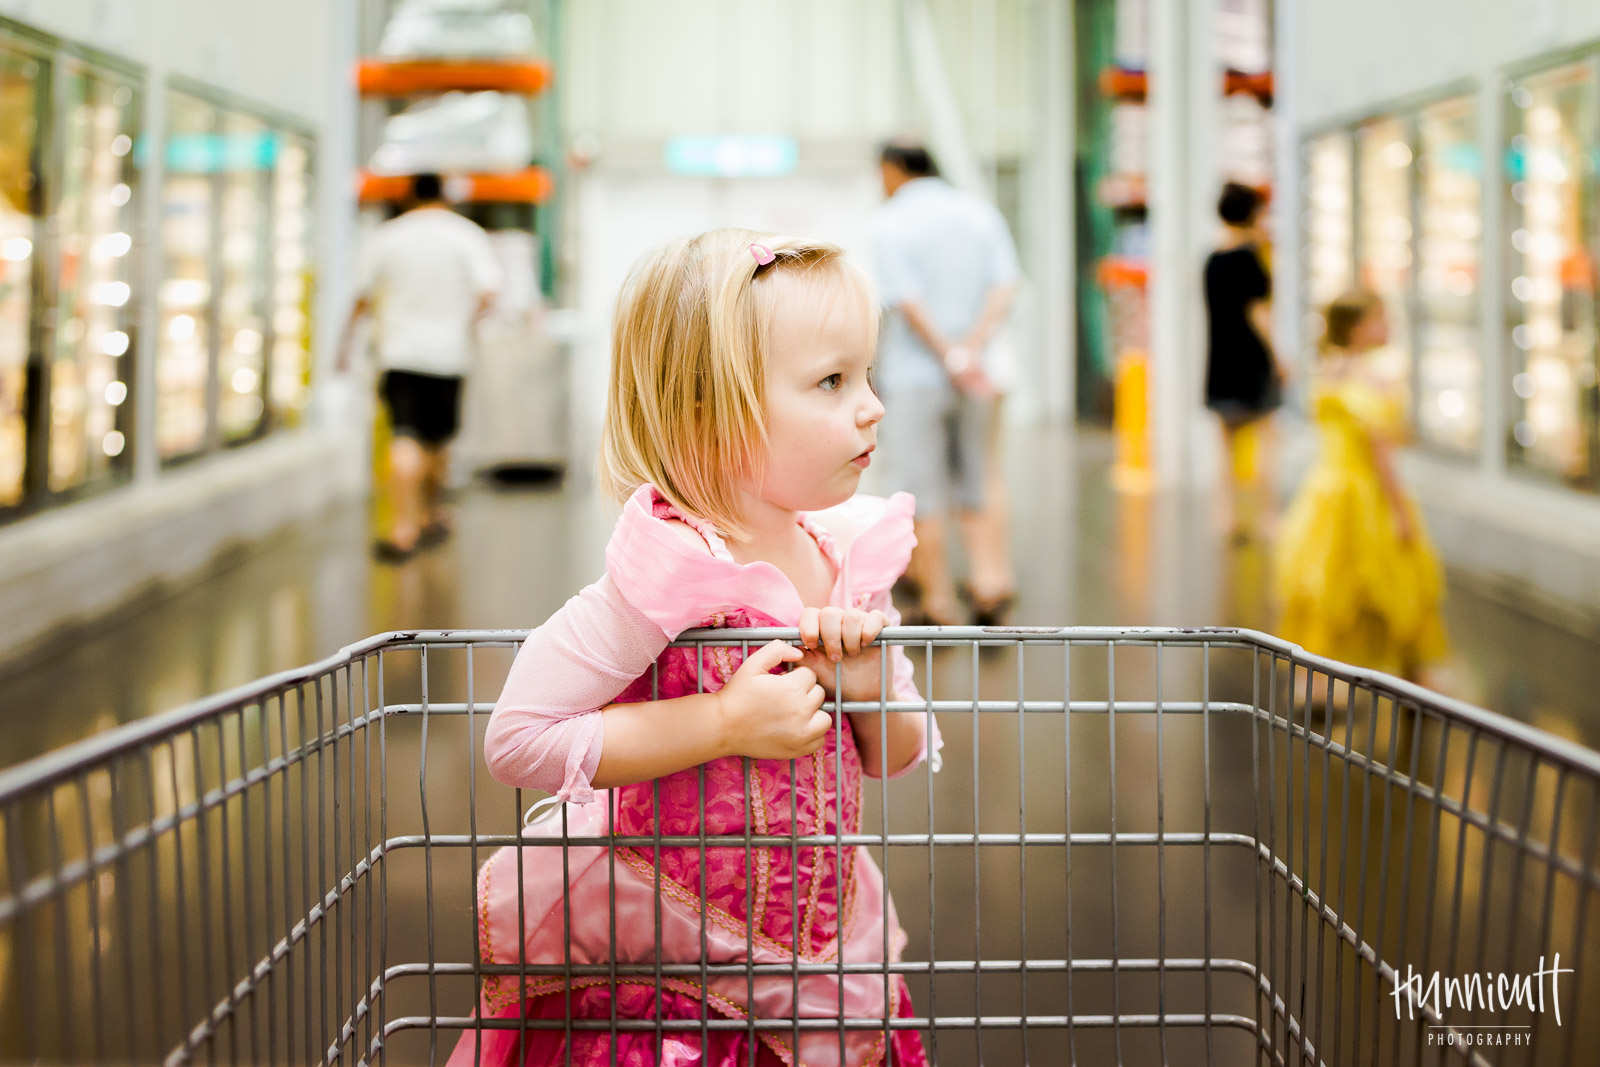 girl dressed as Sleeping Beauty at the grocery store by Rebecca Hunnicutt Farren